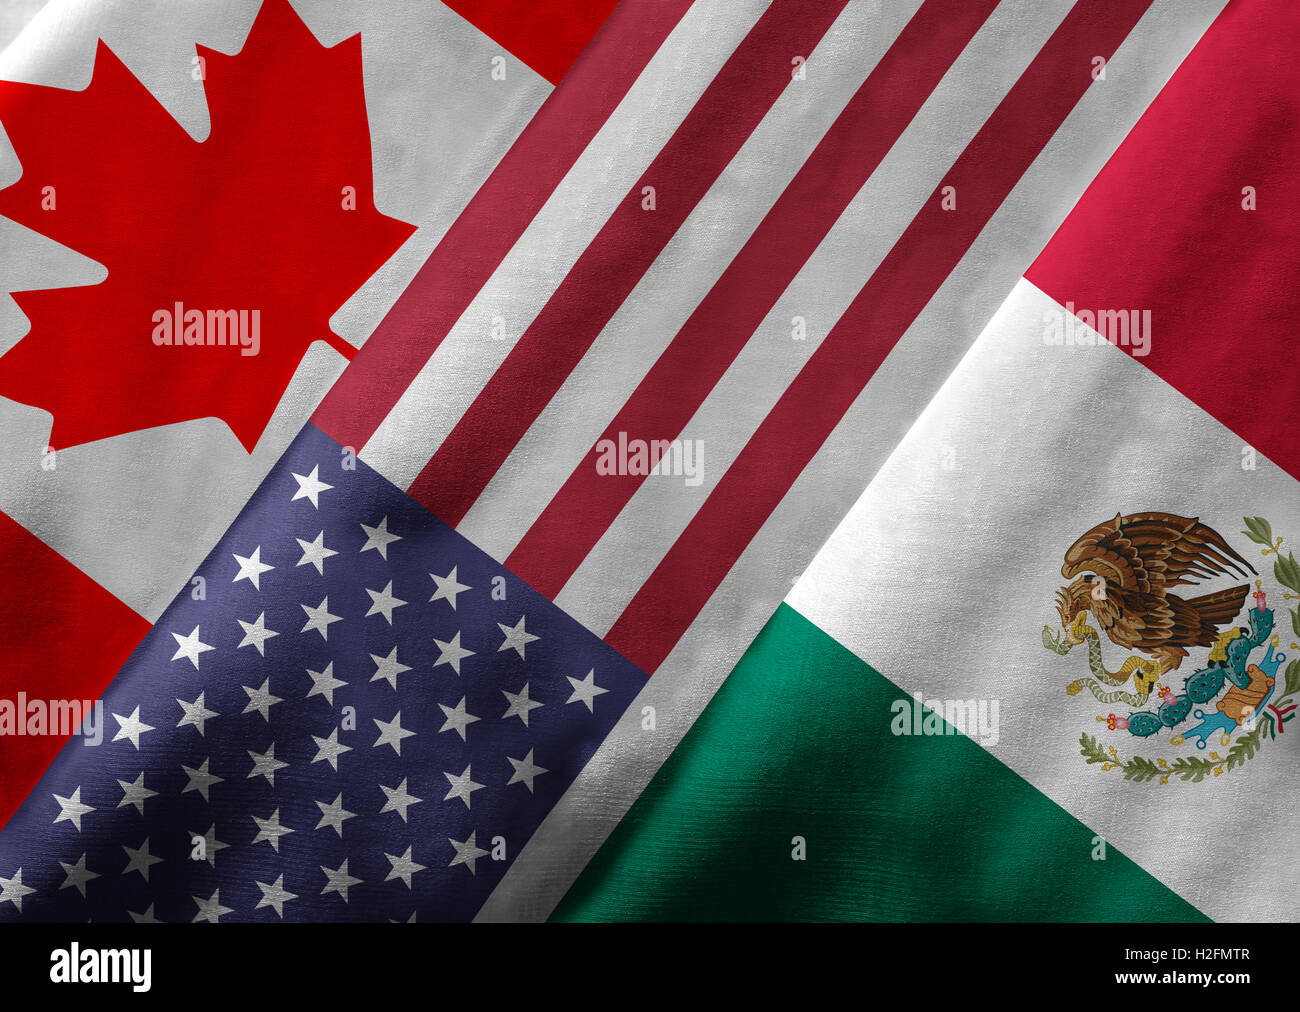 Close up of the flags of the North American Free Trade Agreement NAFTA members on textile texture. Stock Photo